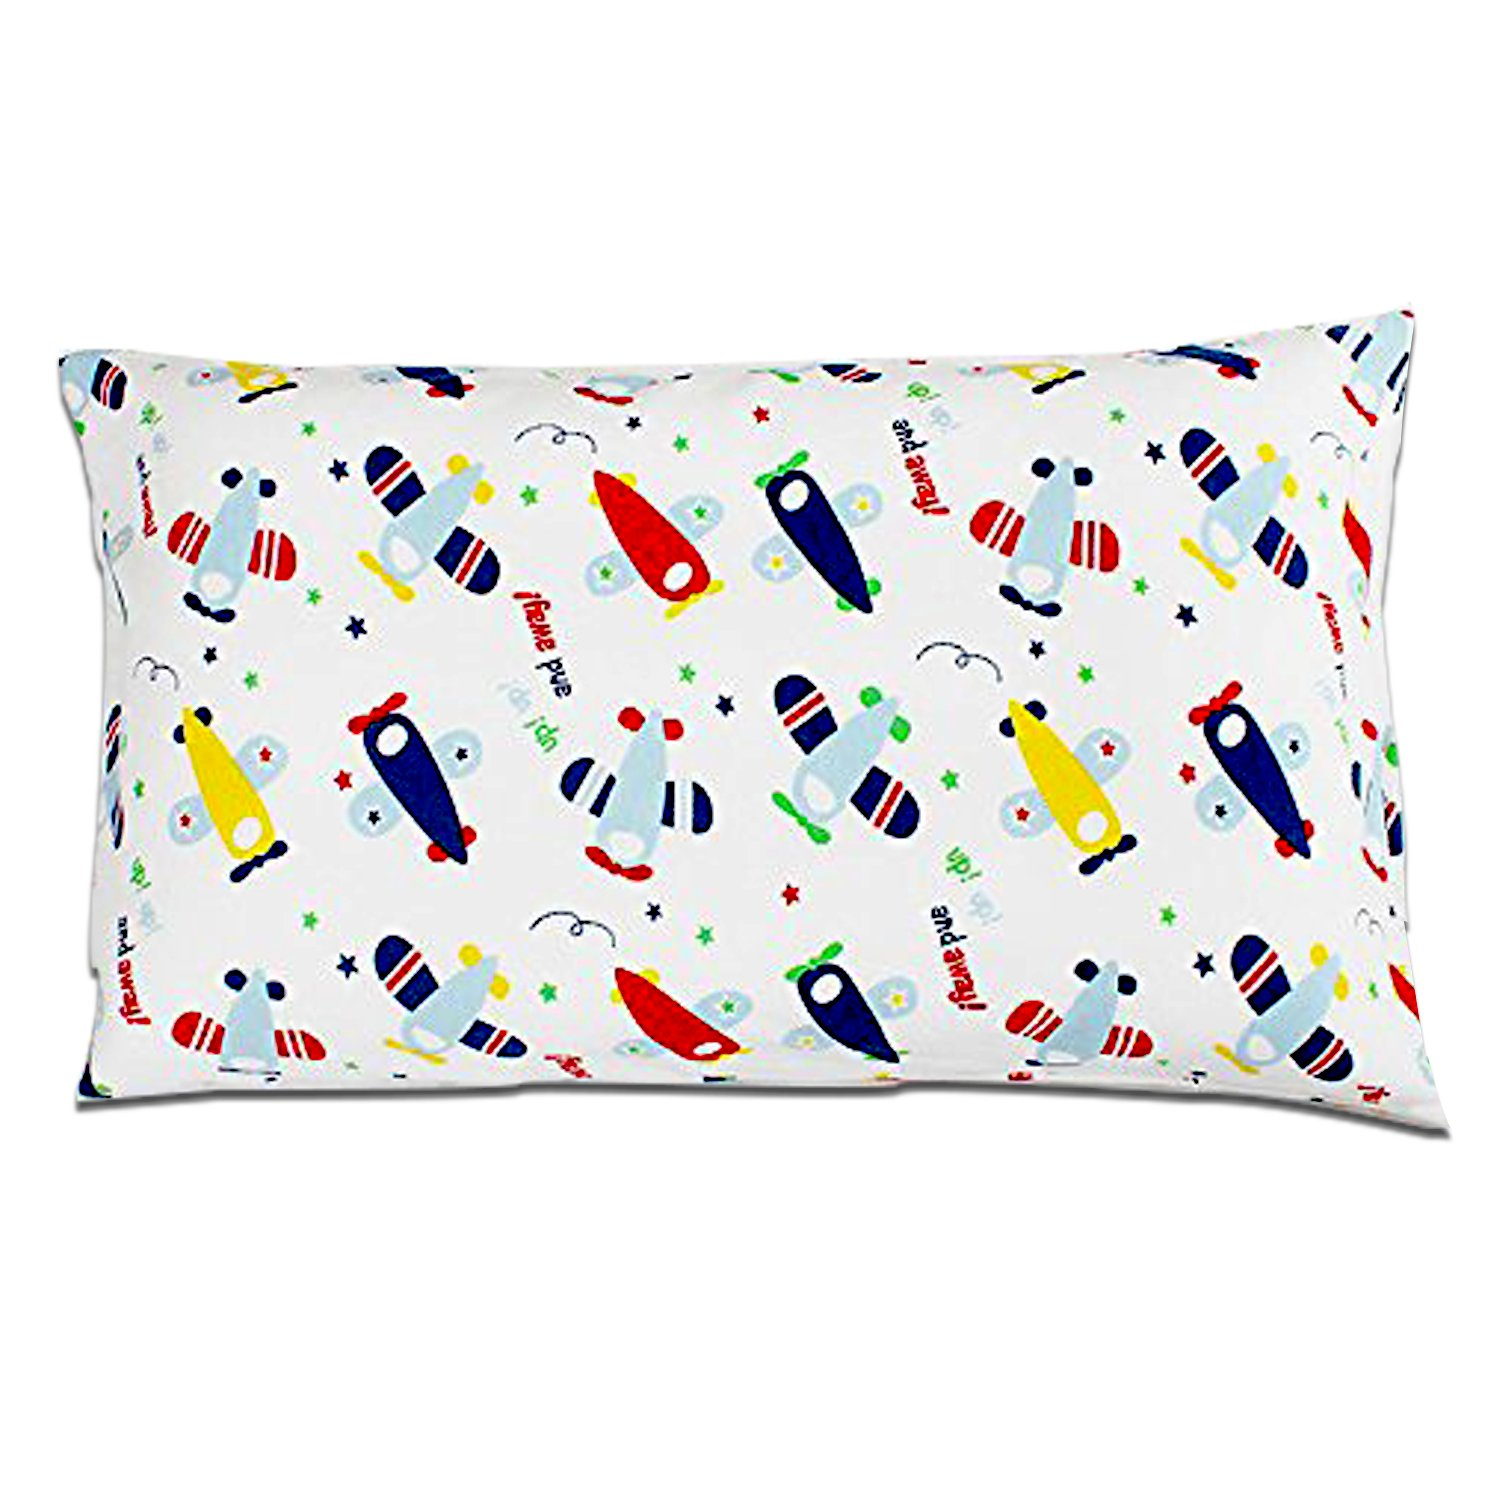 Cotton Toddler Pillowcase,100% Natural Cotton Covers 14'' x 20'' Pillow Protectors Envelop Style for Kids Bedding -Airplanes